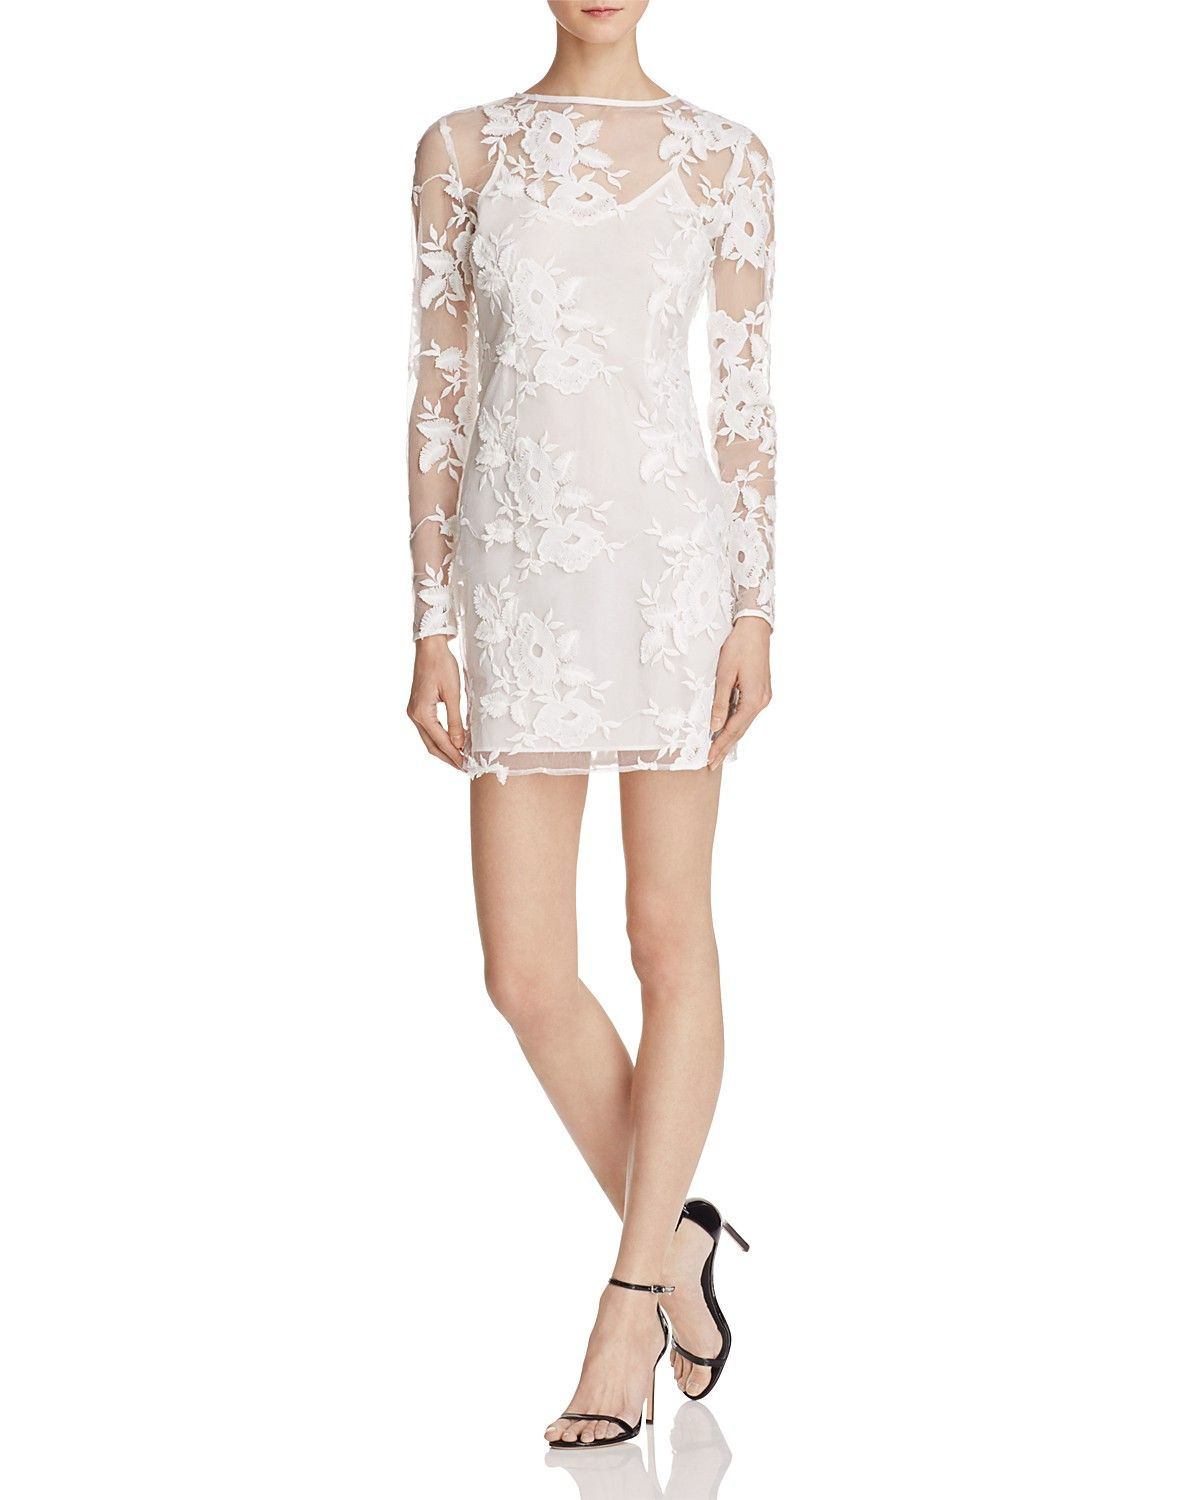 Endless Rose Embroidered Illusion Dress - 100% Exclusive